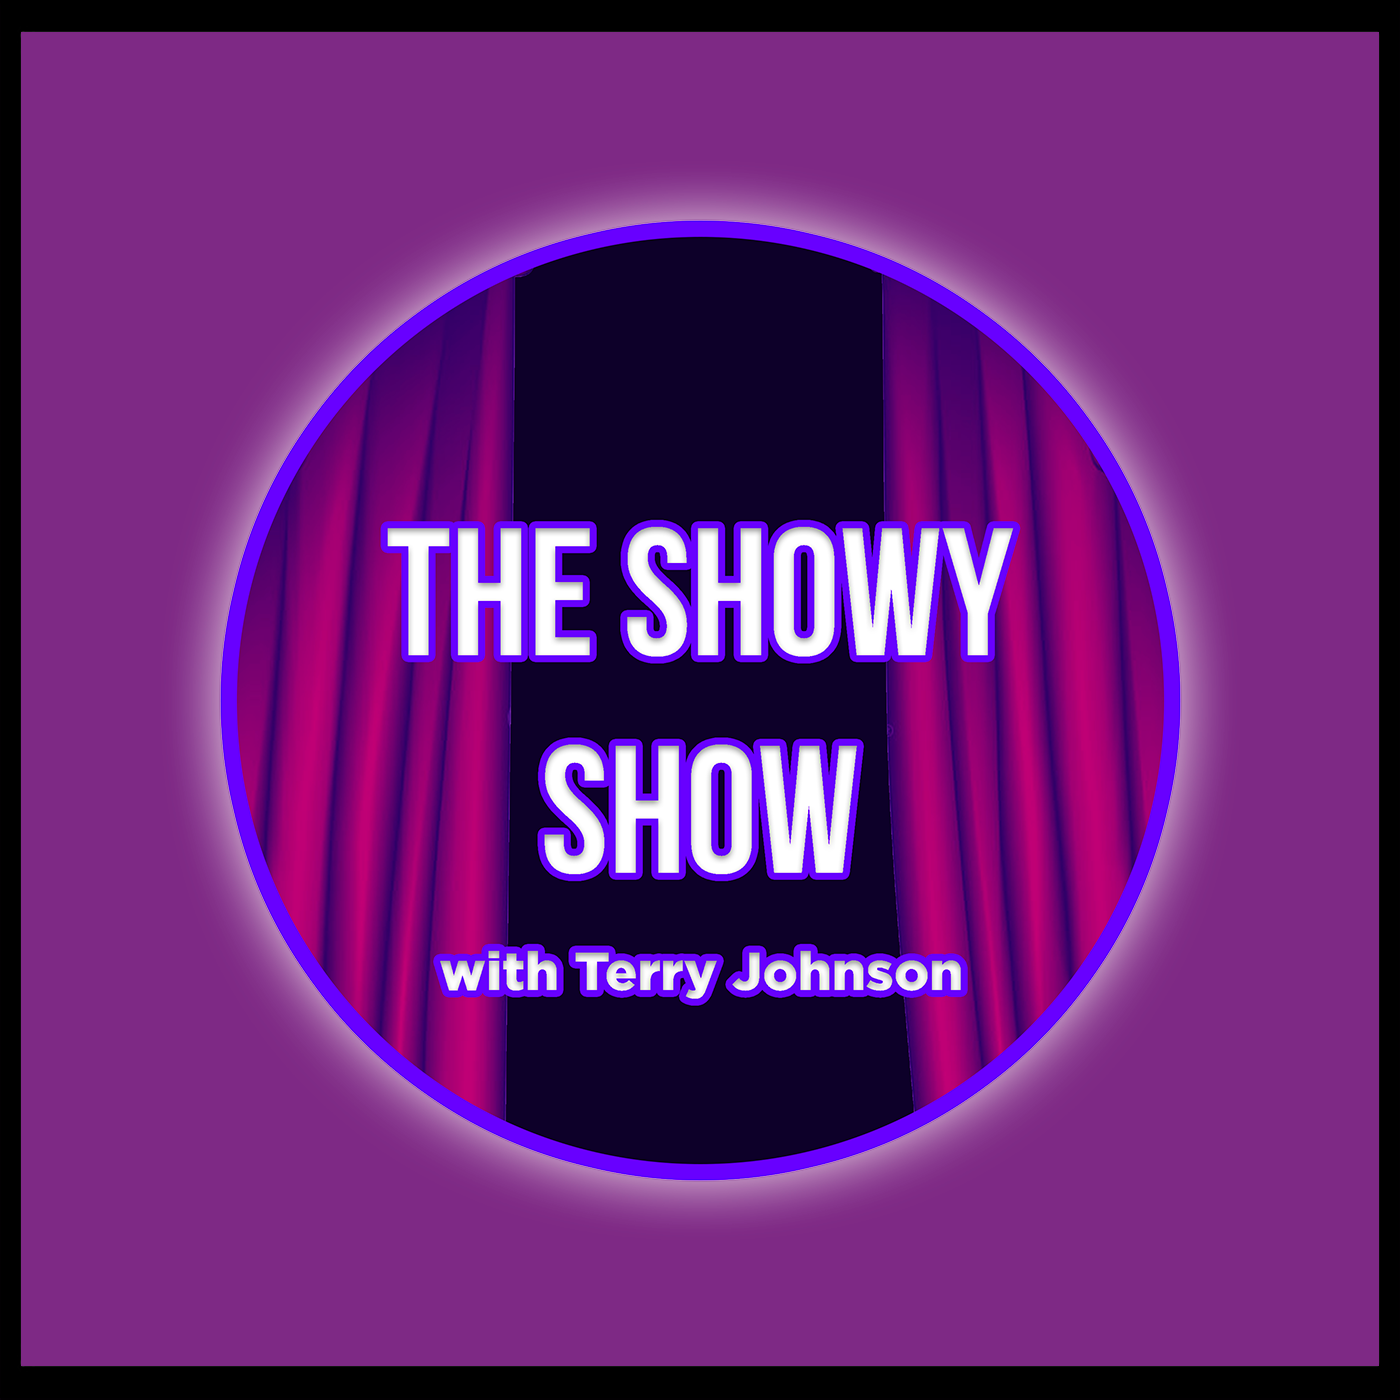 The Showy Show